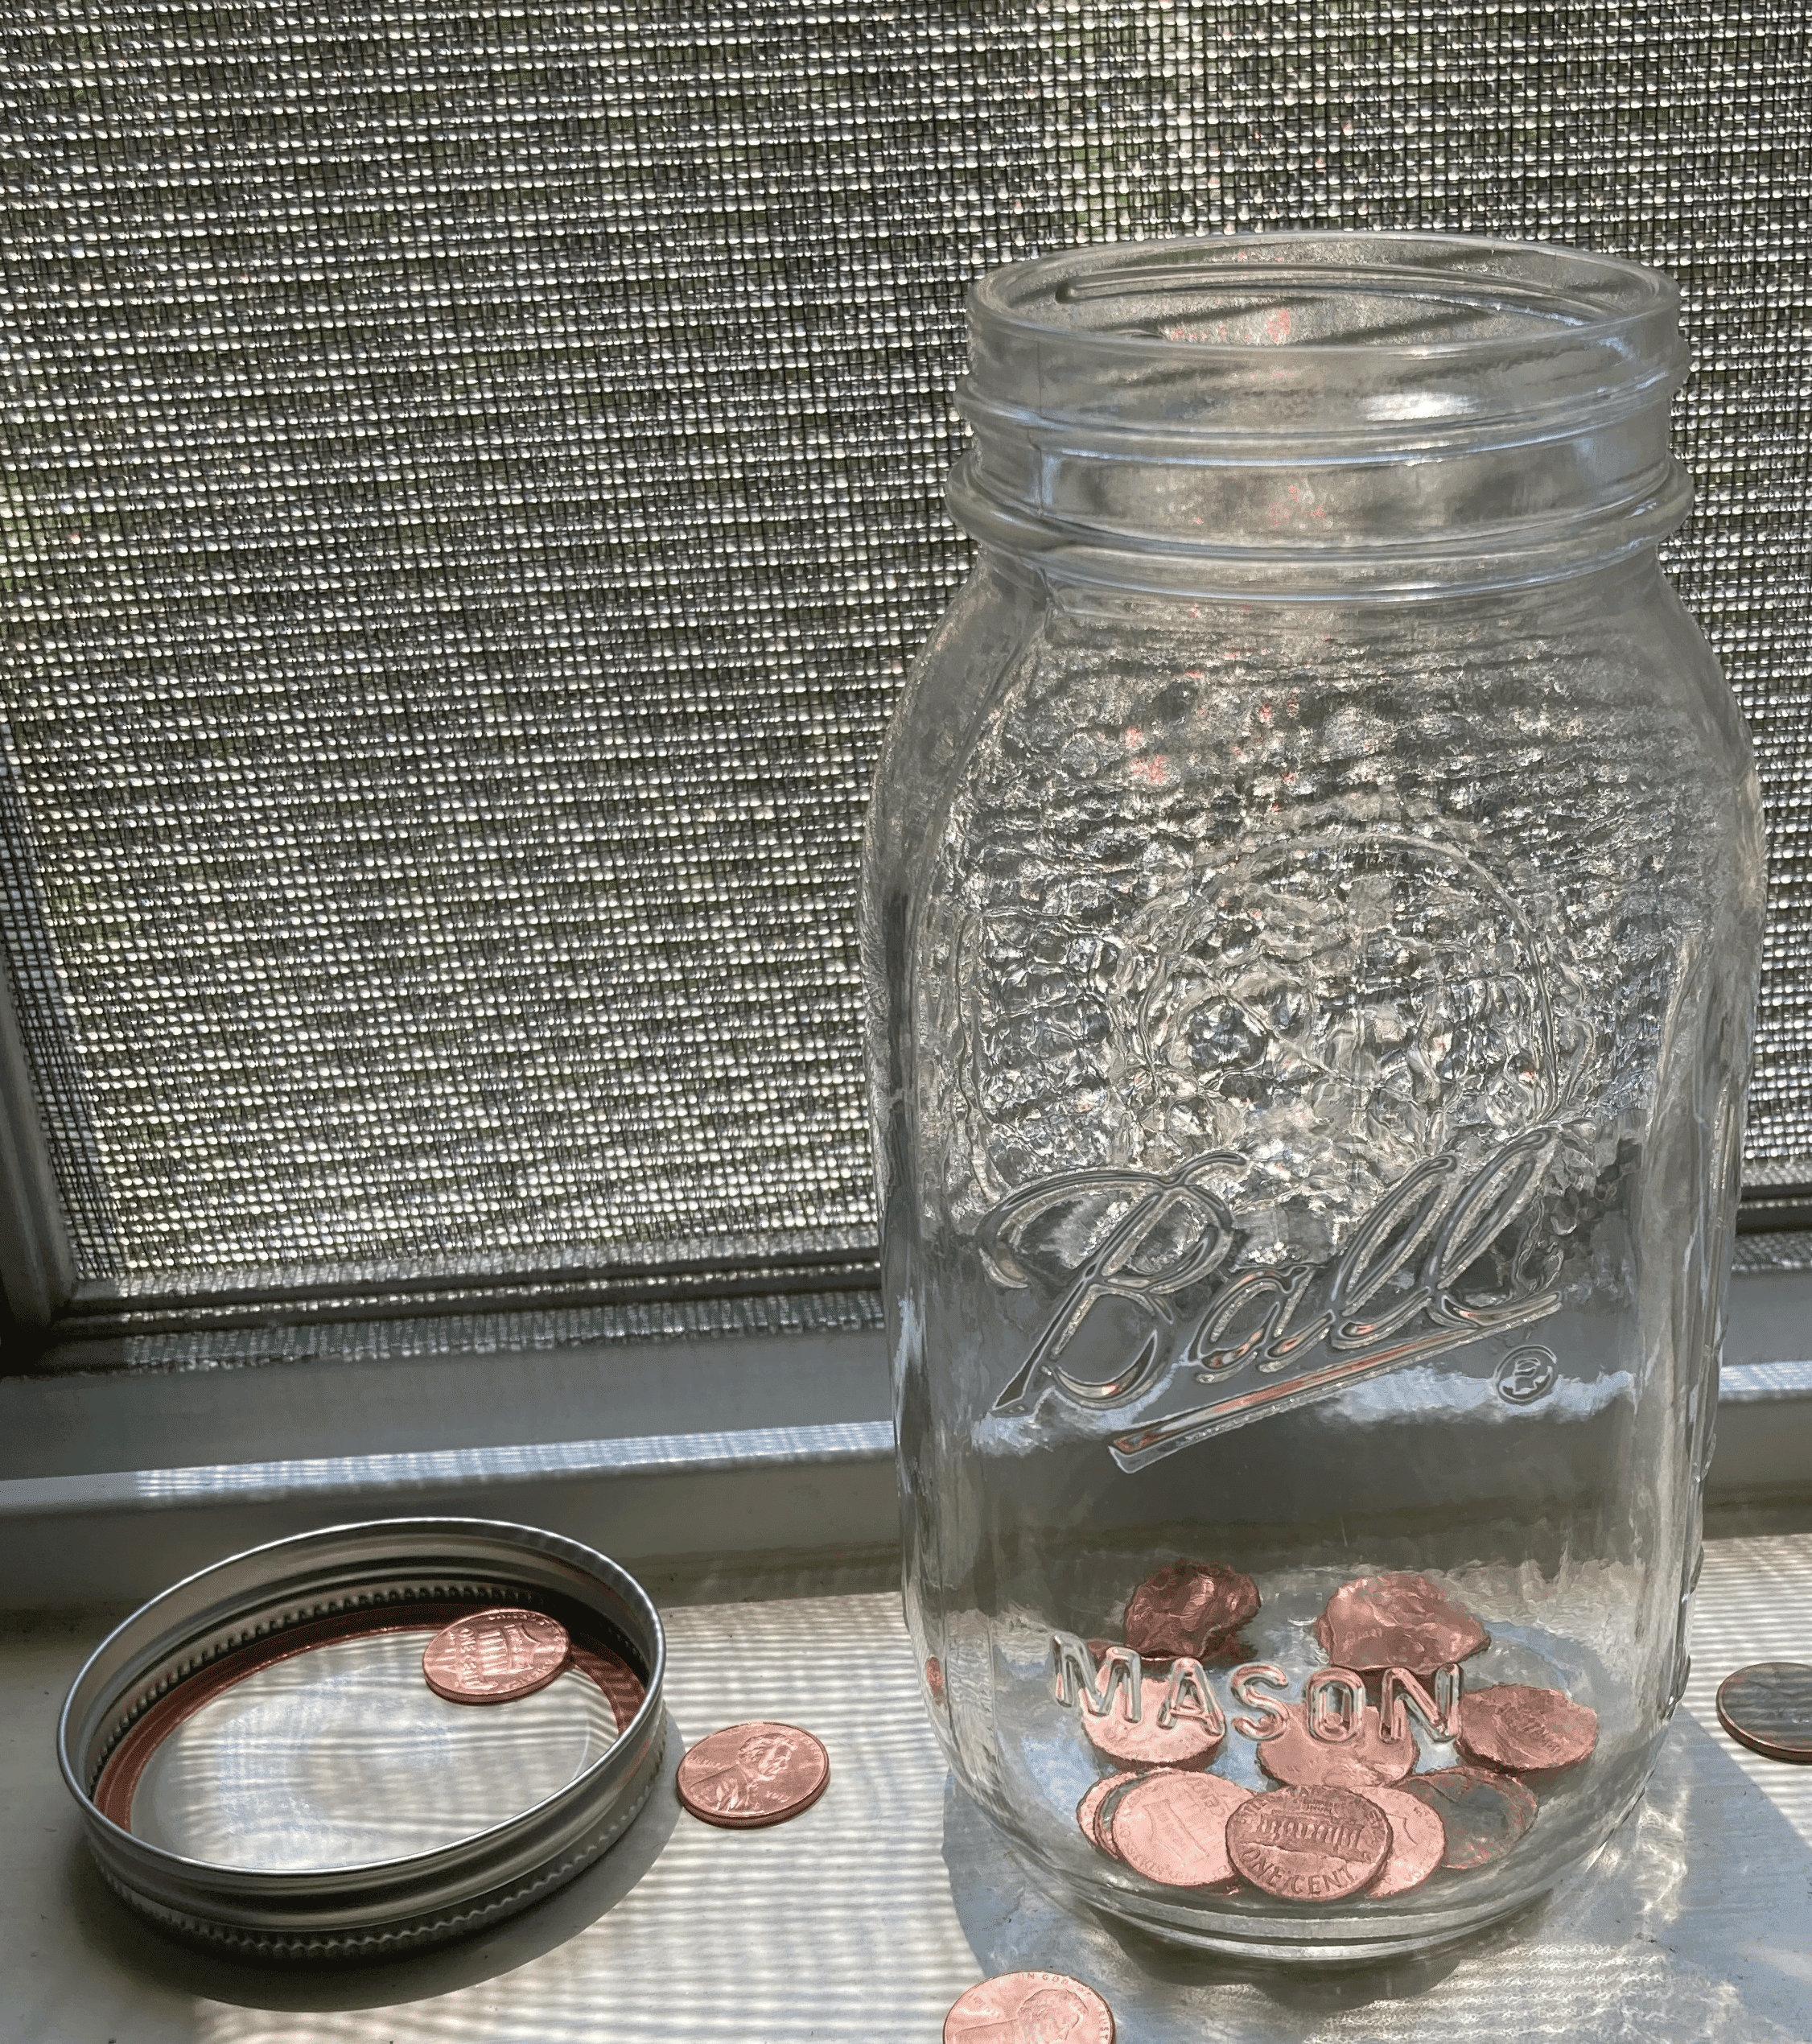 An open mason jar with a few pennies inside and surrounding it. Photo courtesy of the author.